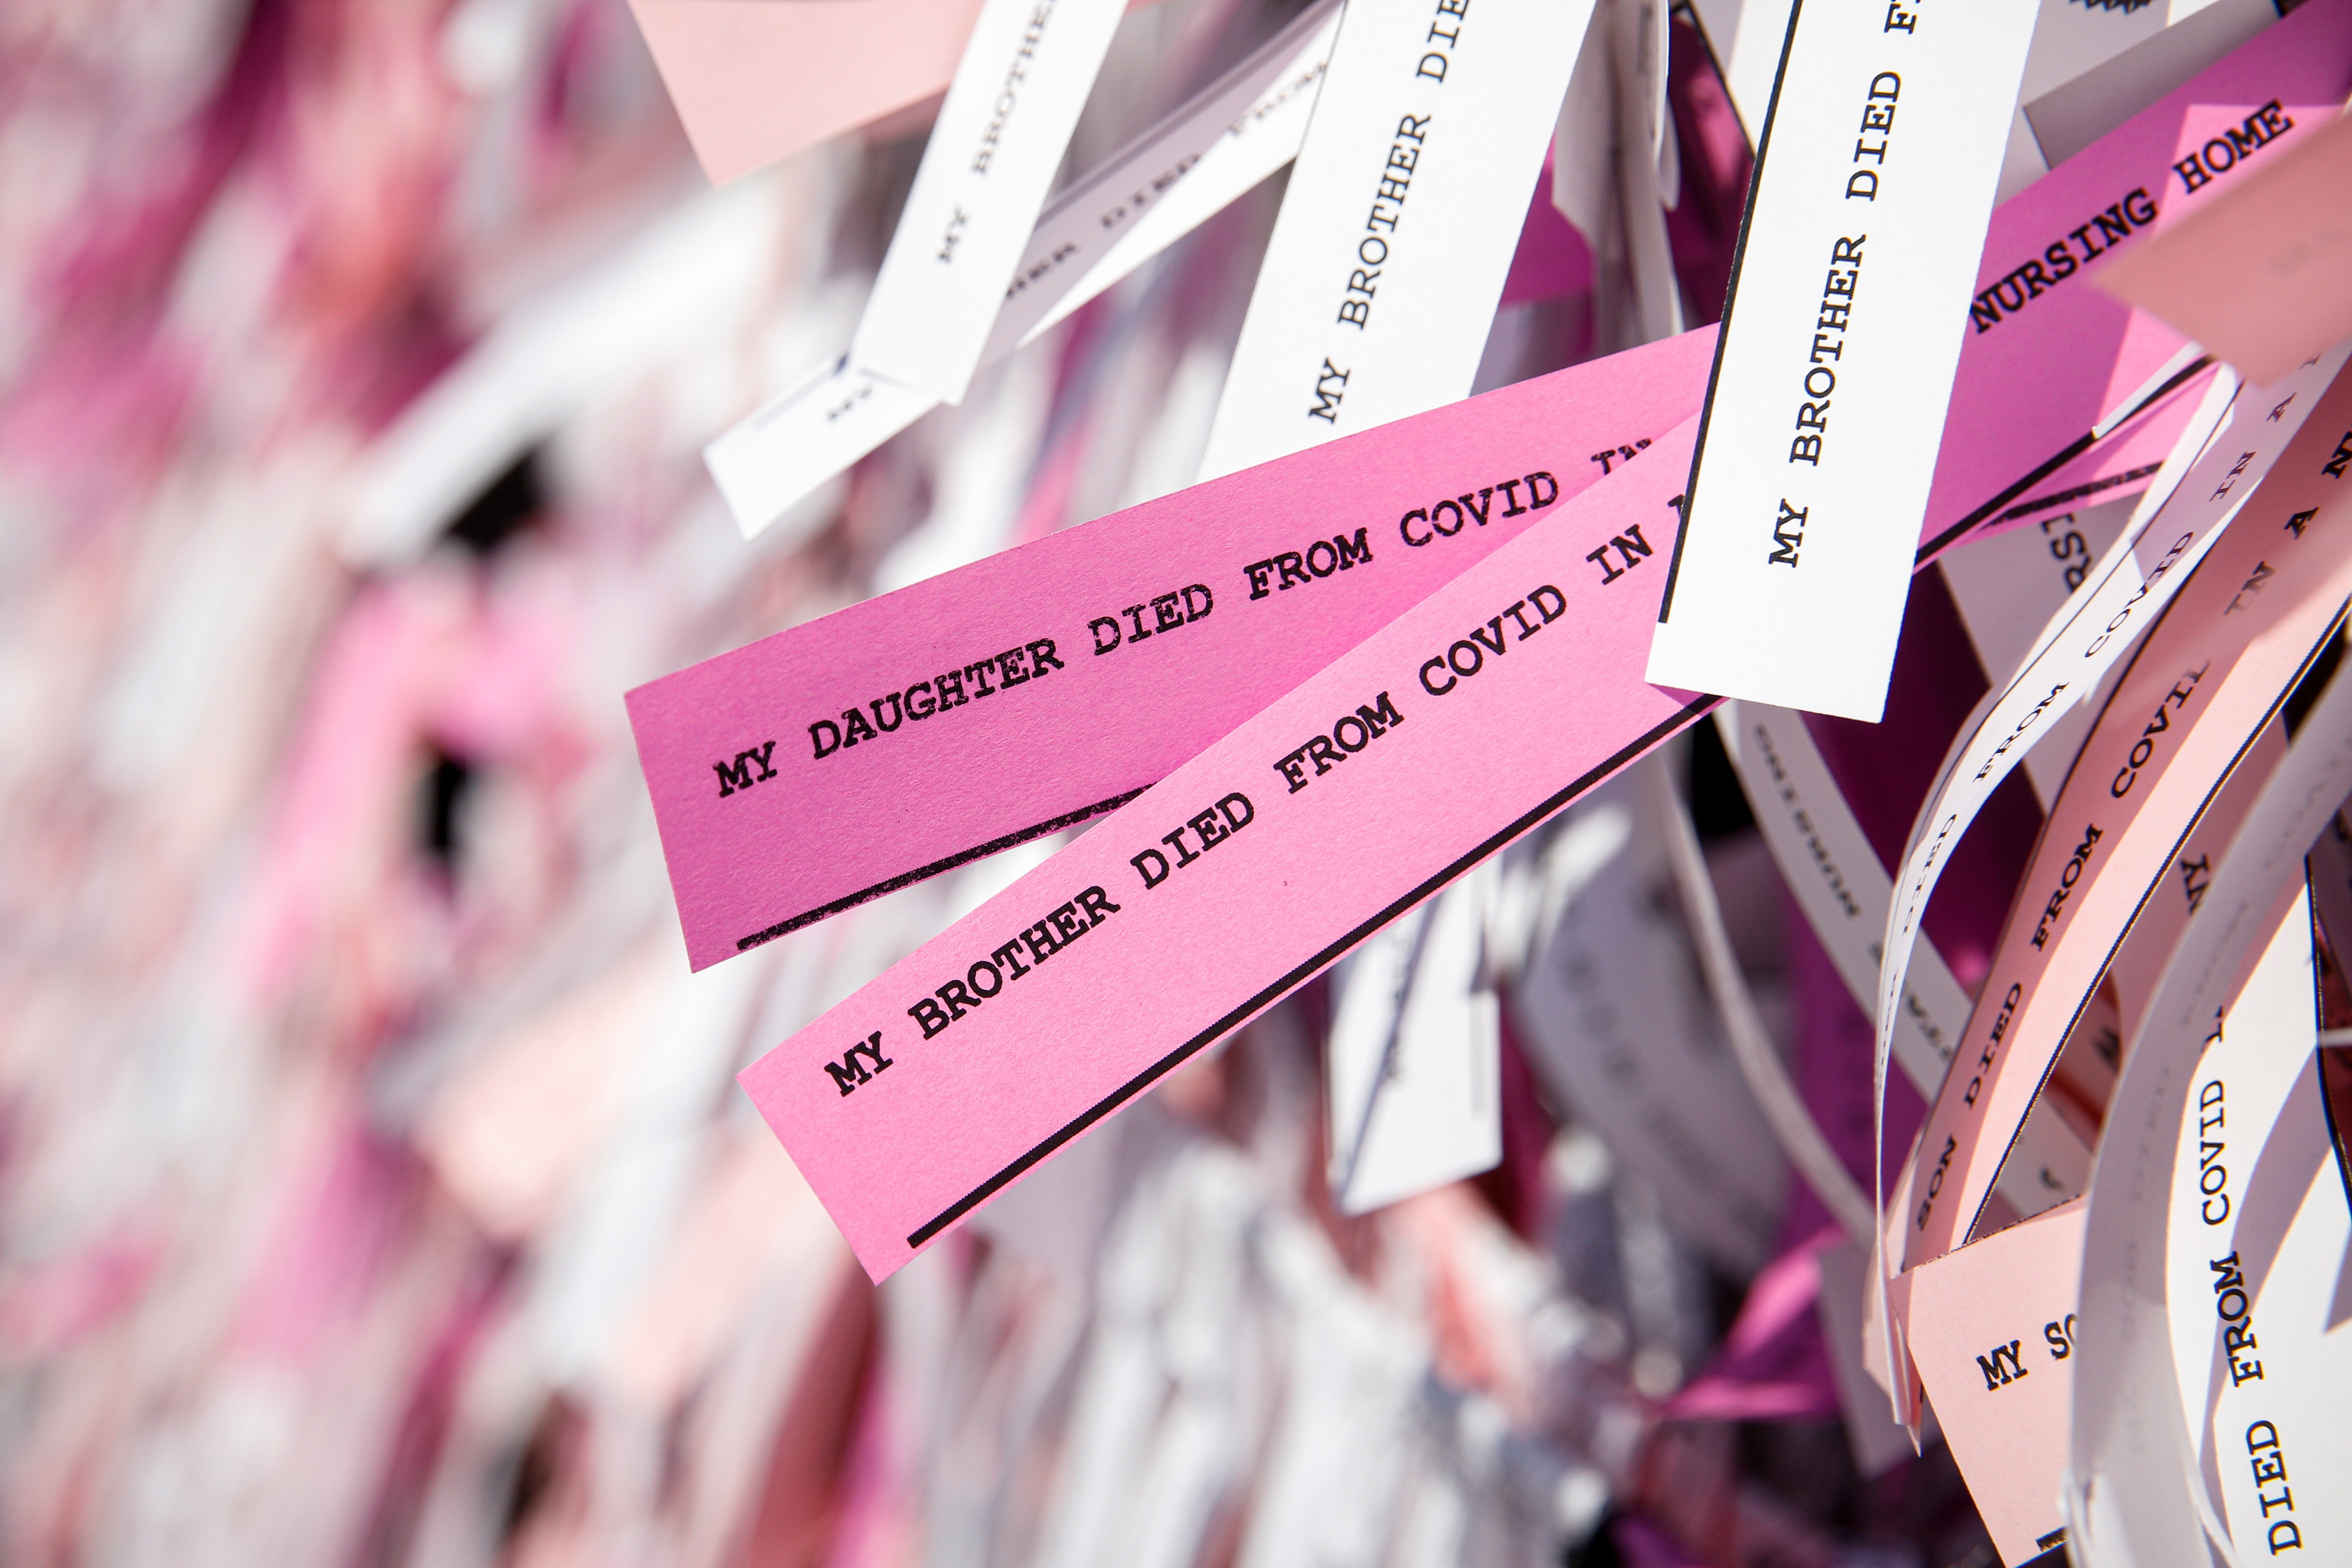 """Messages are seen on ribbons as part of the """"Naming the Lost Memorials,"""" as the U.S. deaths from the coronavirus disease"""